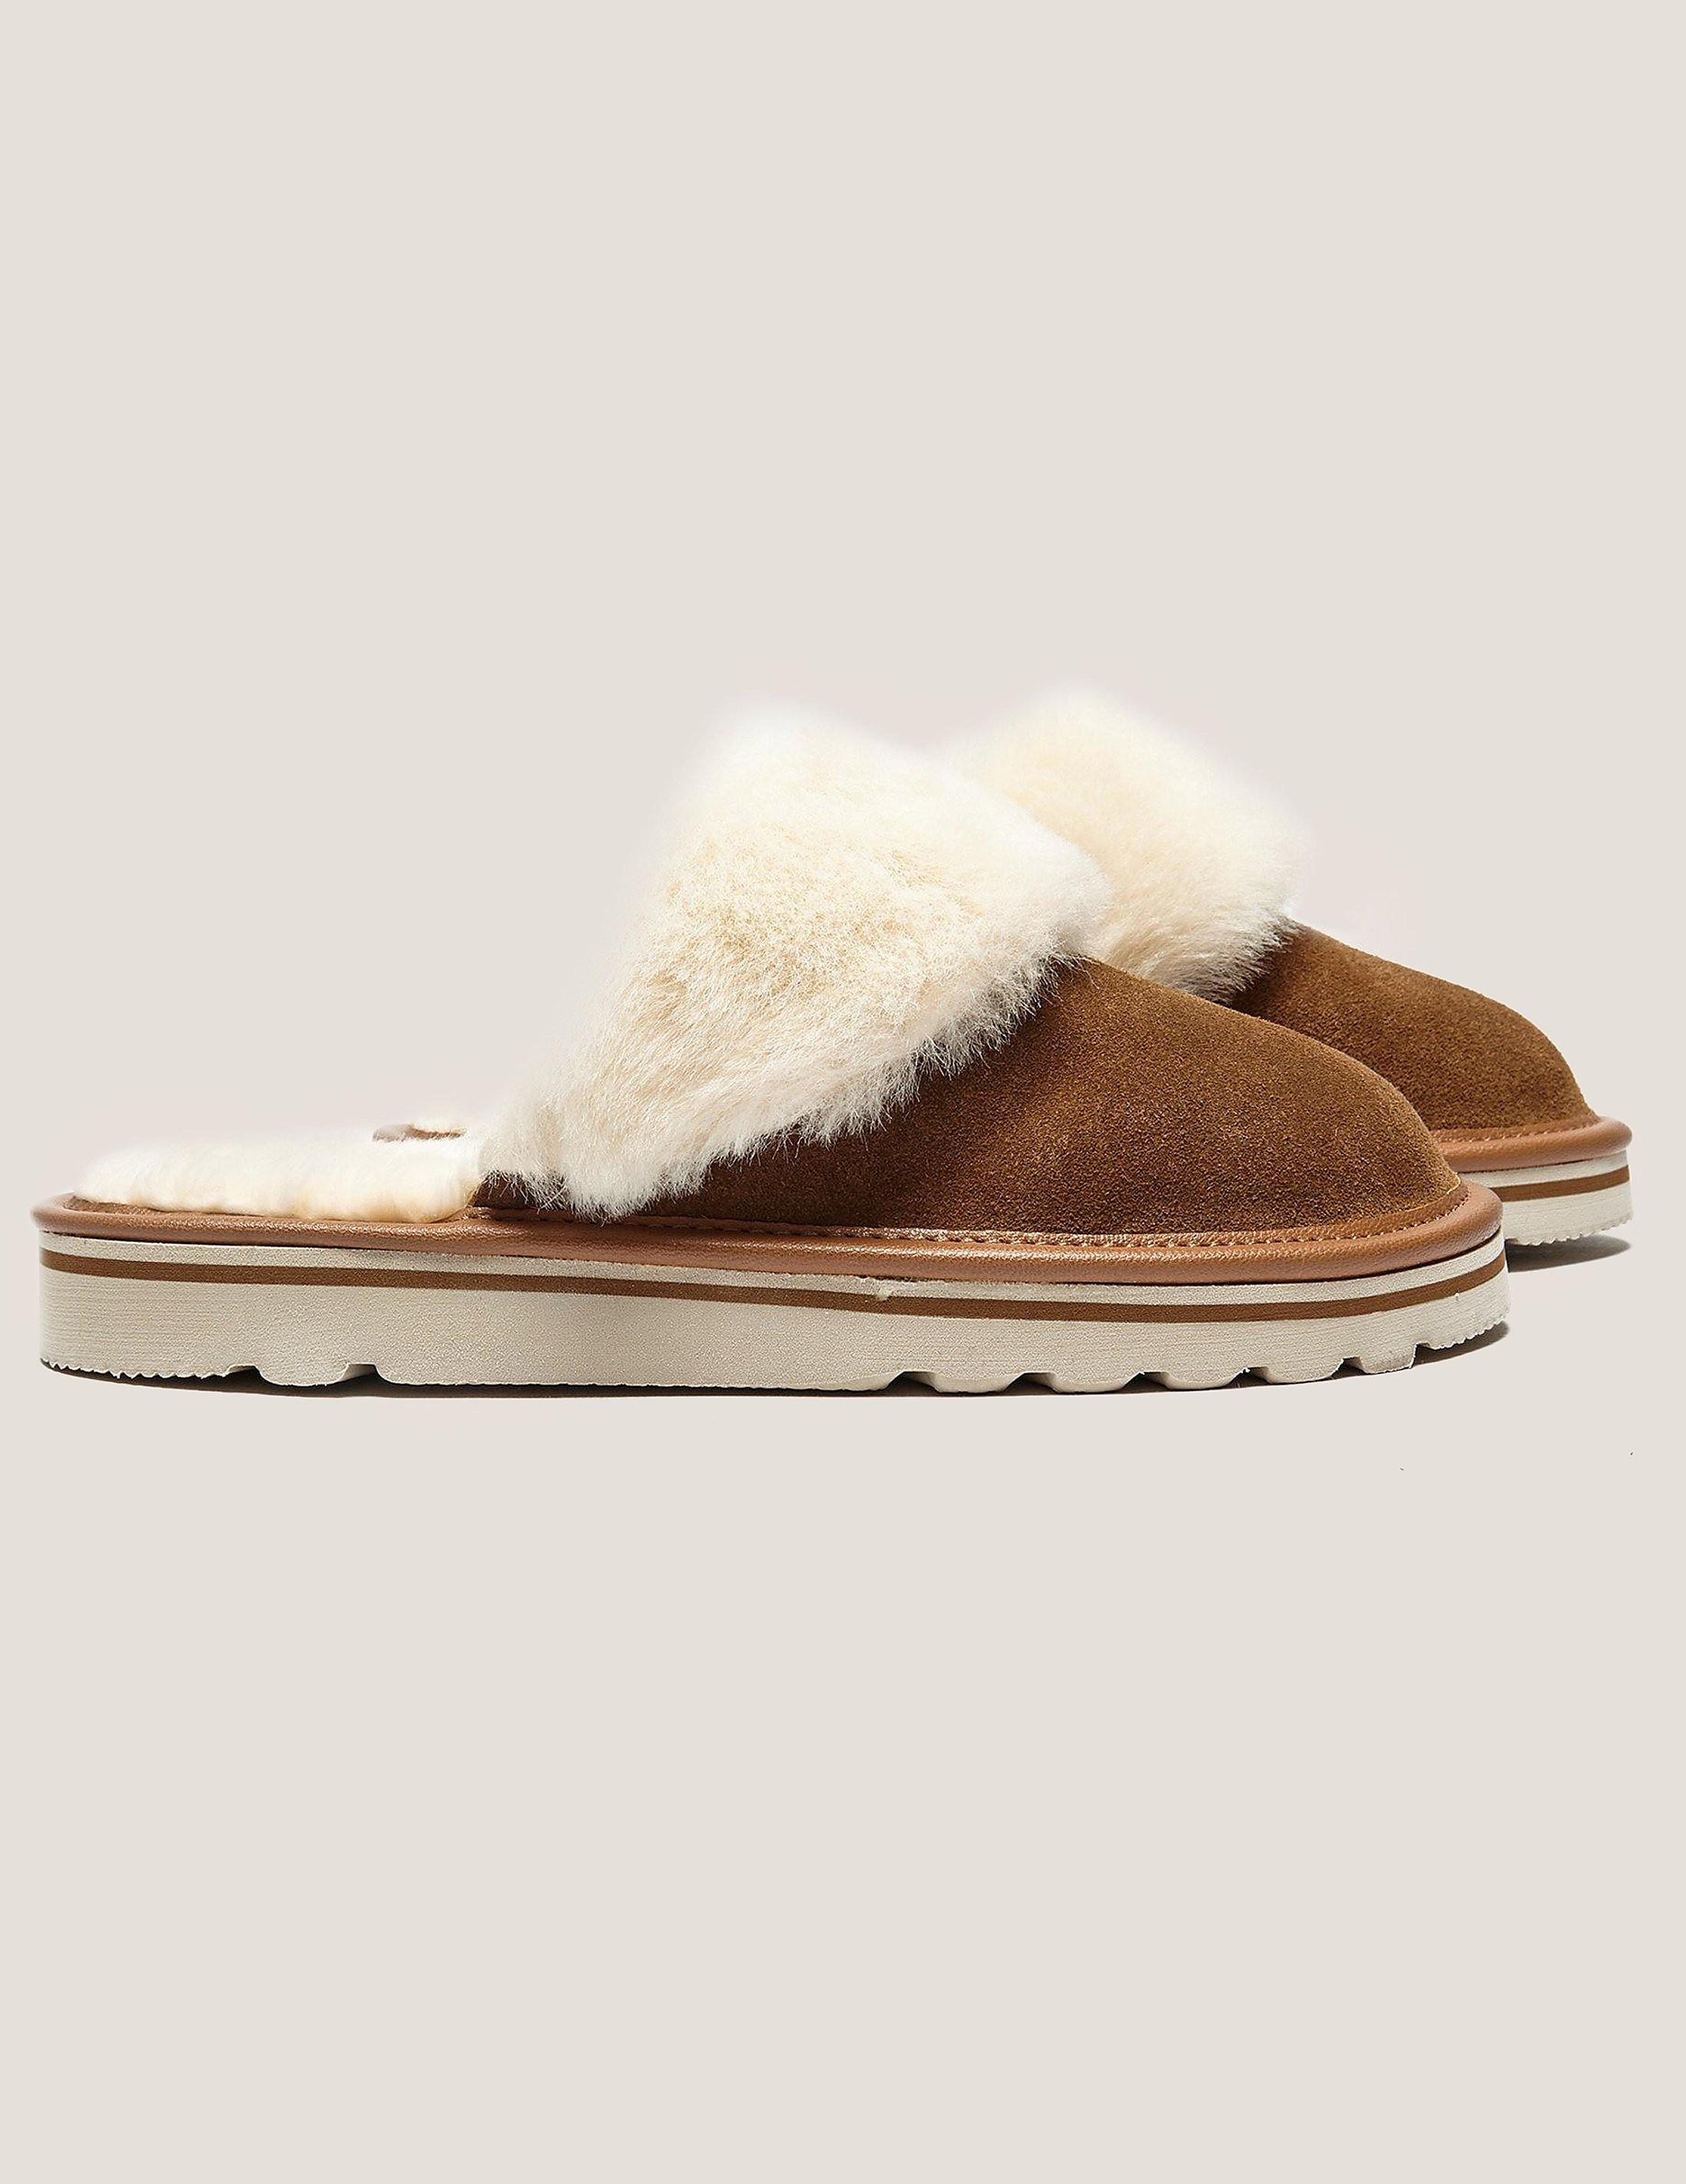 Barbour Victoria Mule Slippers